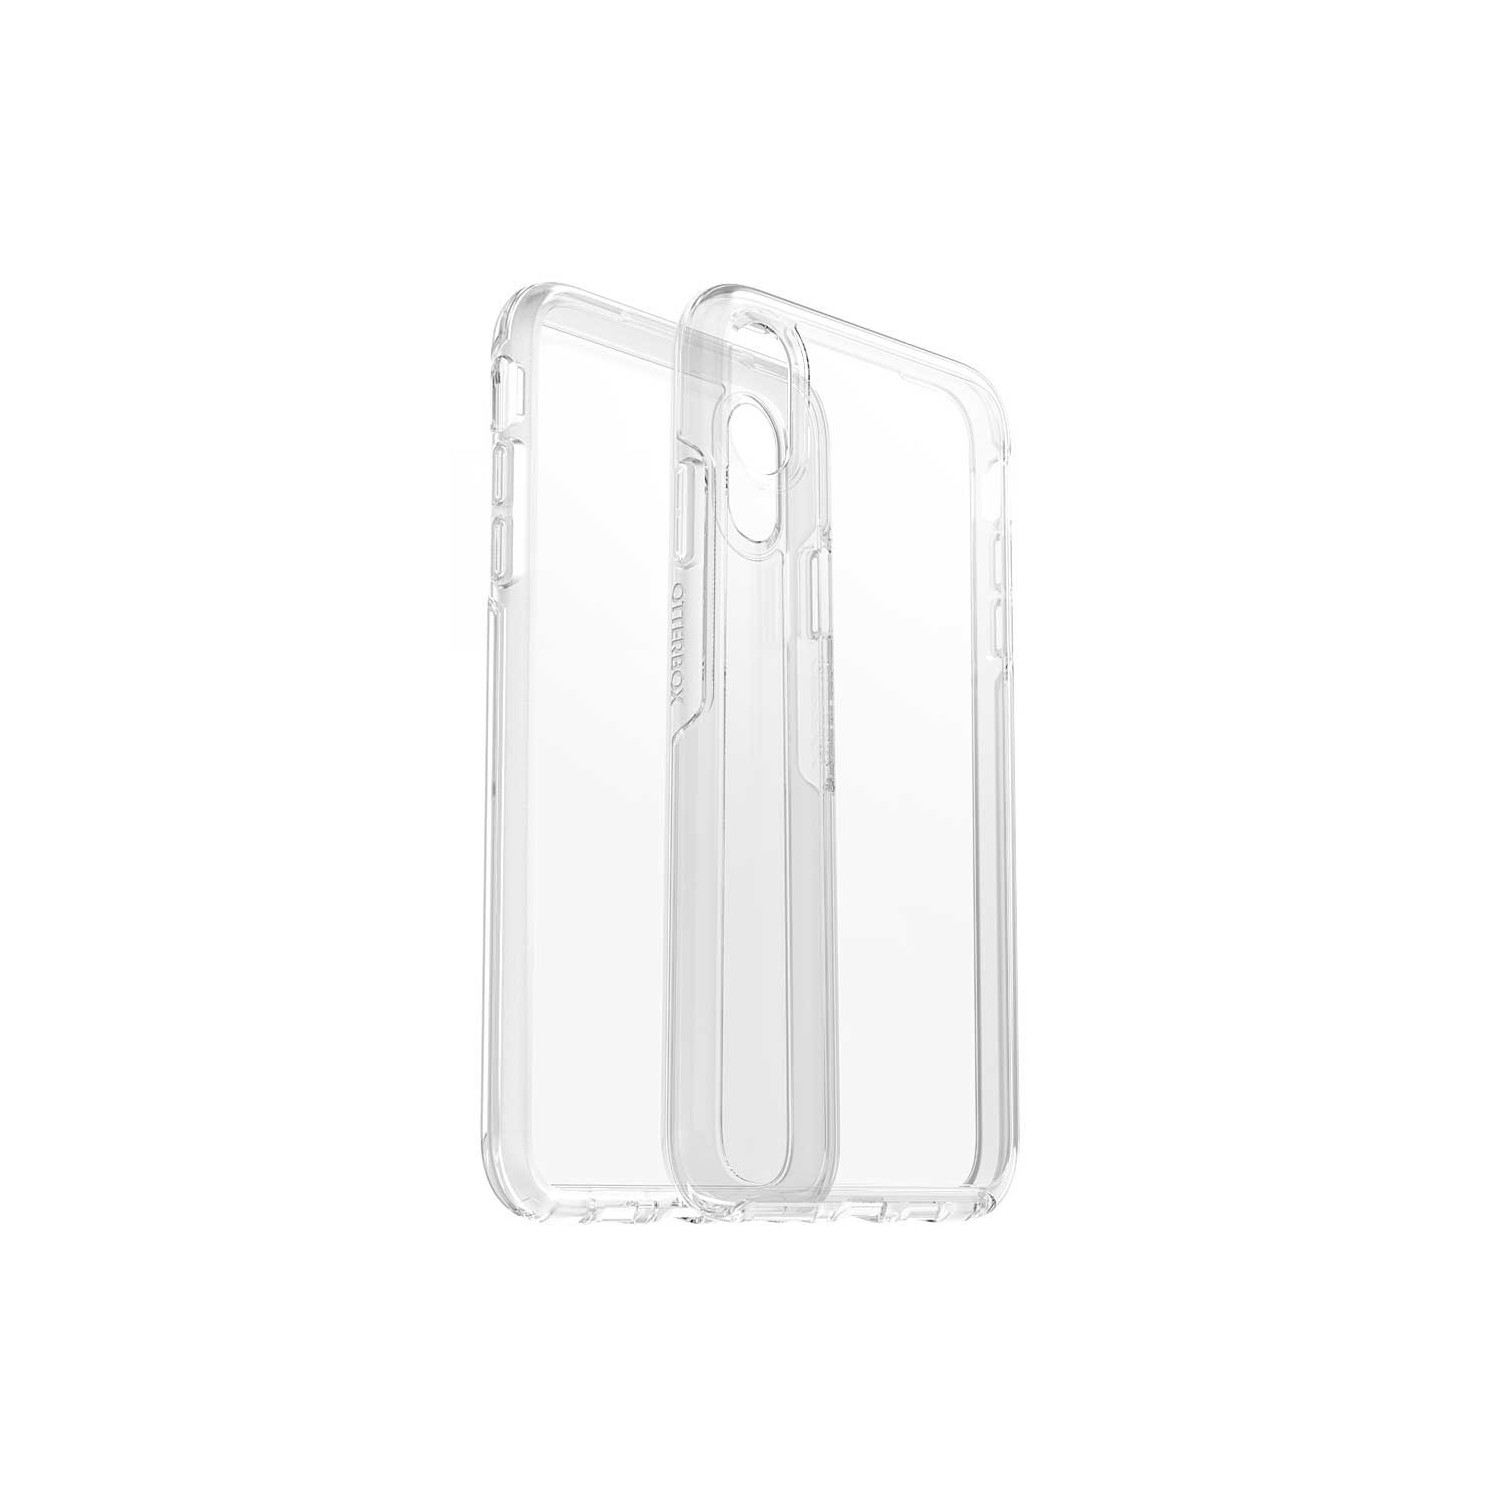 Case - Otterbox Commuter for iPhone Xs MAX Clear